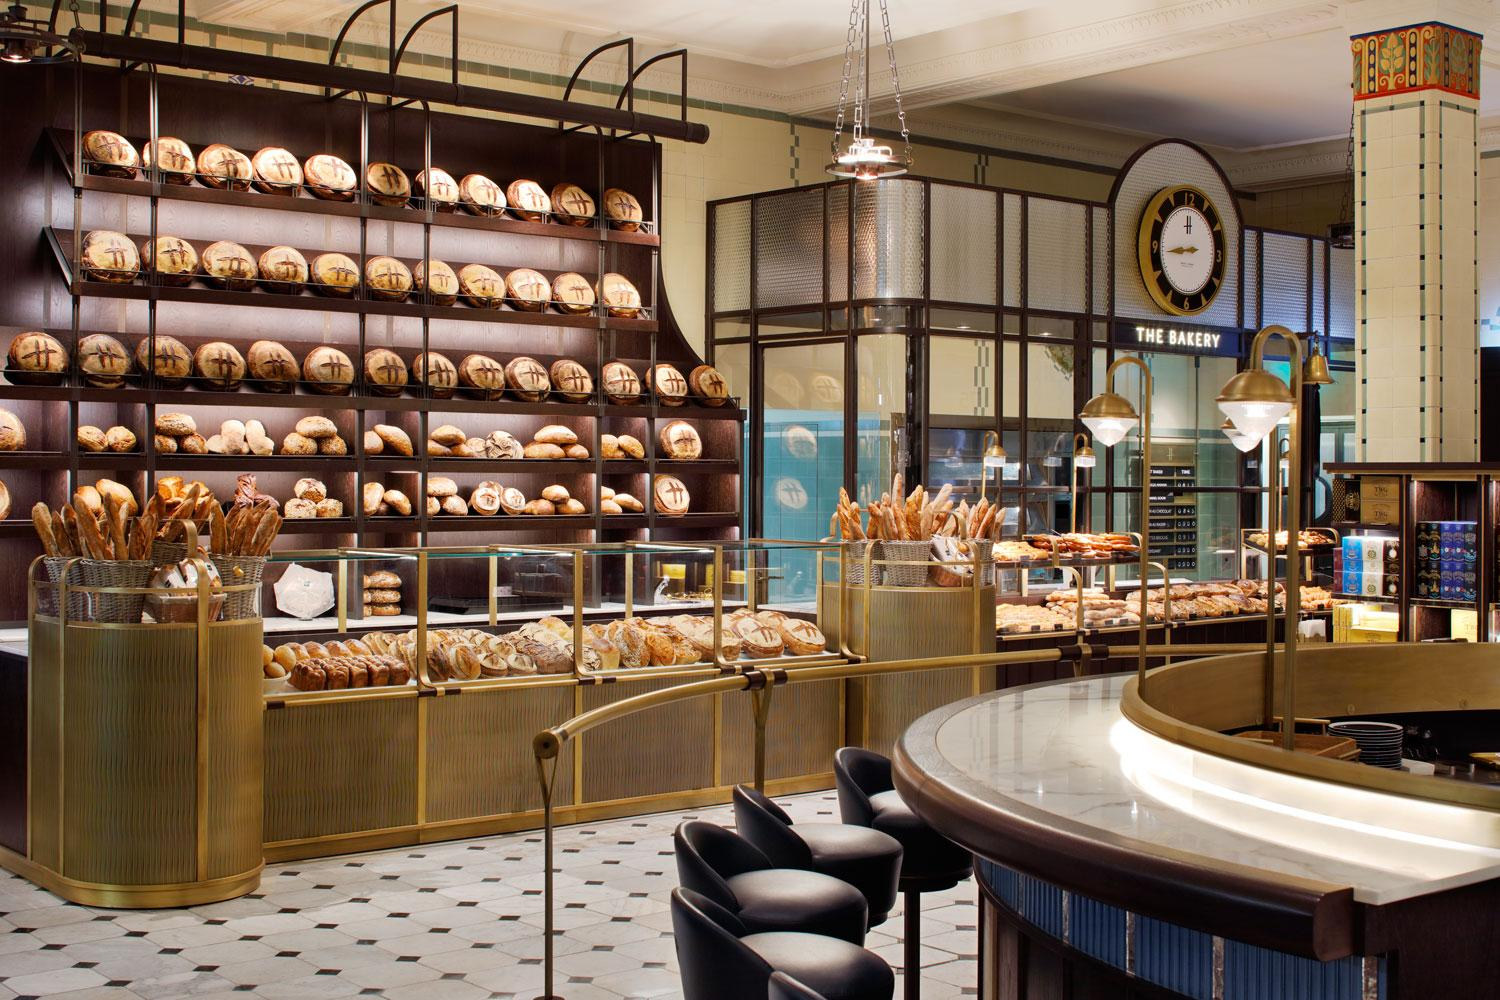 The newly launched roastery and bake hall at Harrods.